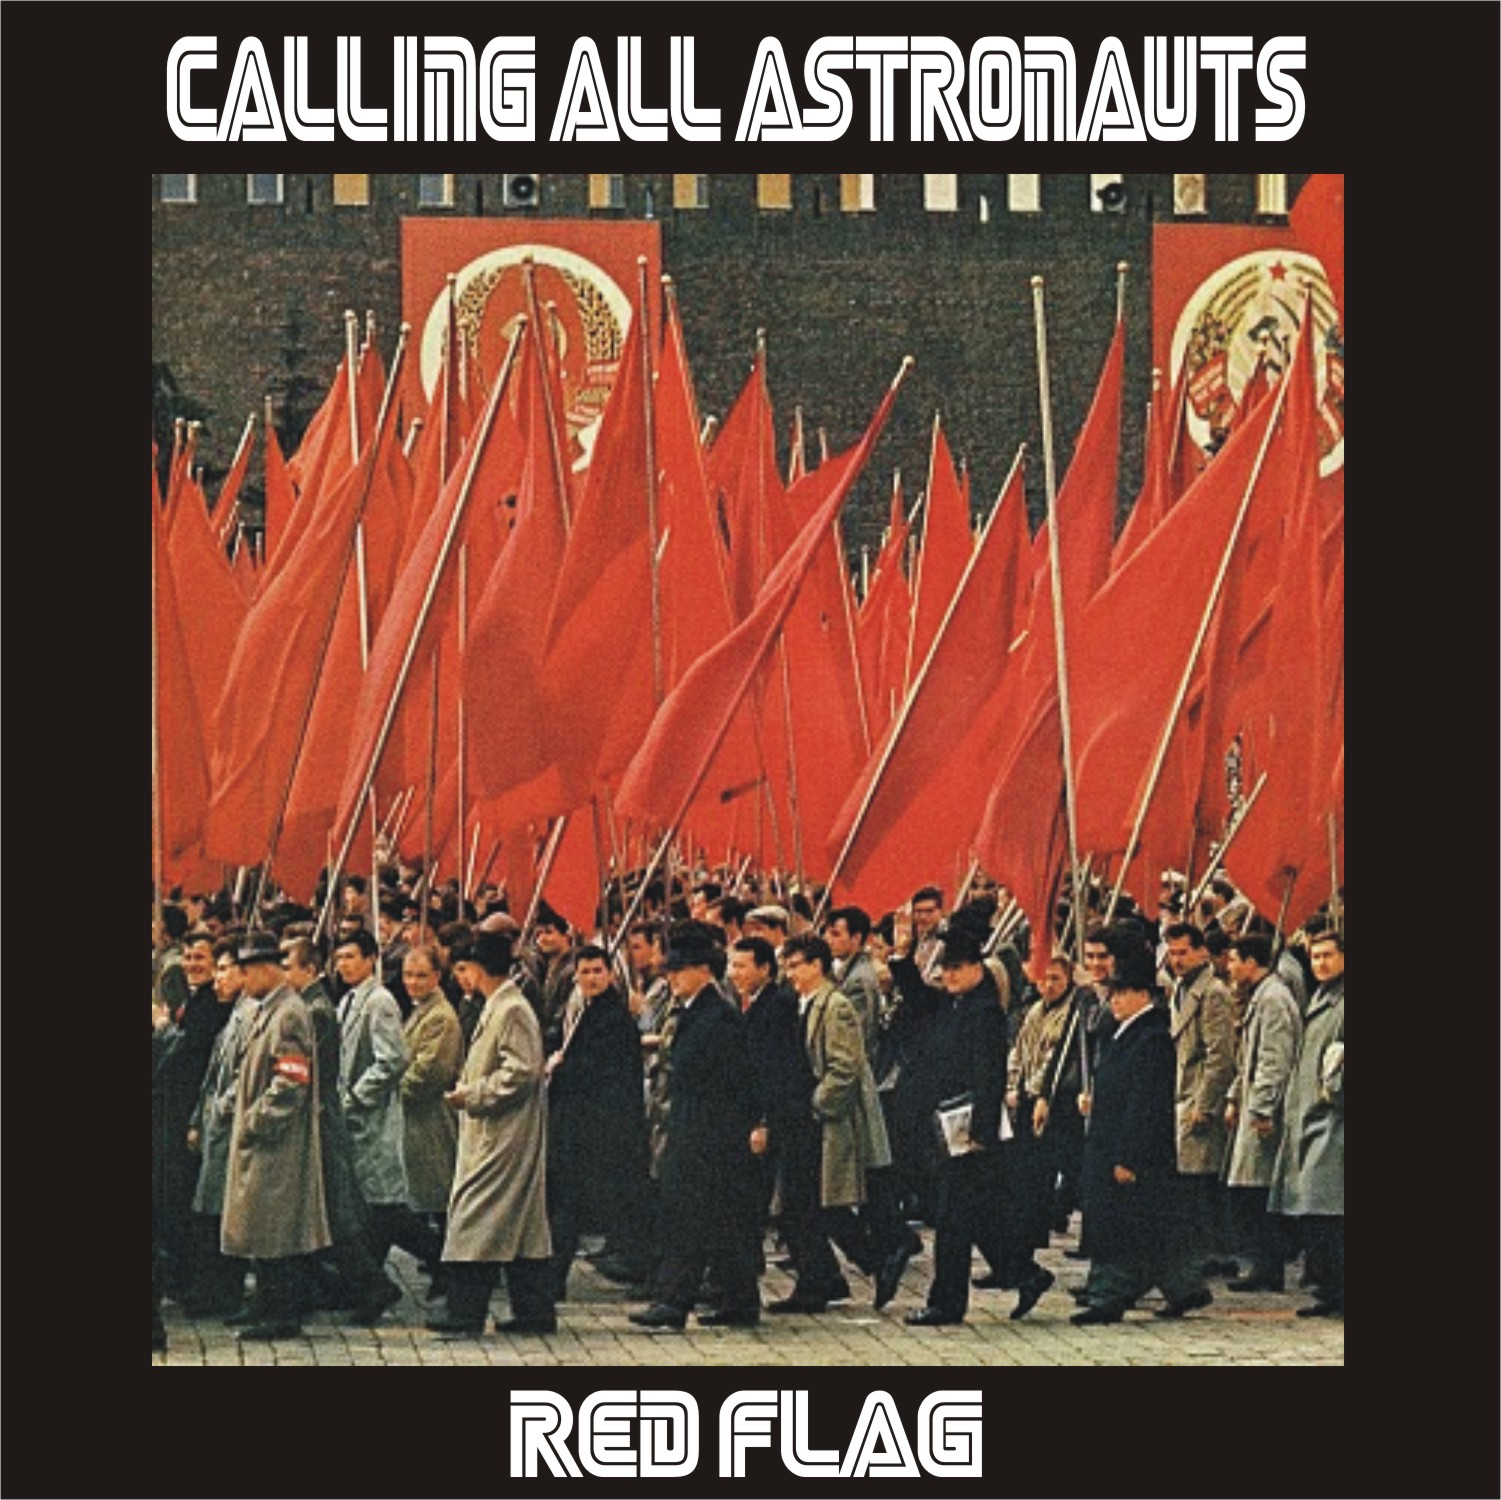 Calling All Astronauts - Red Flag